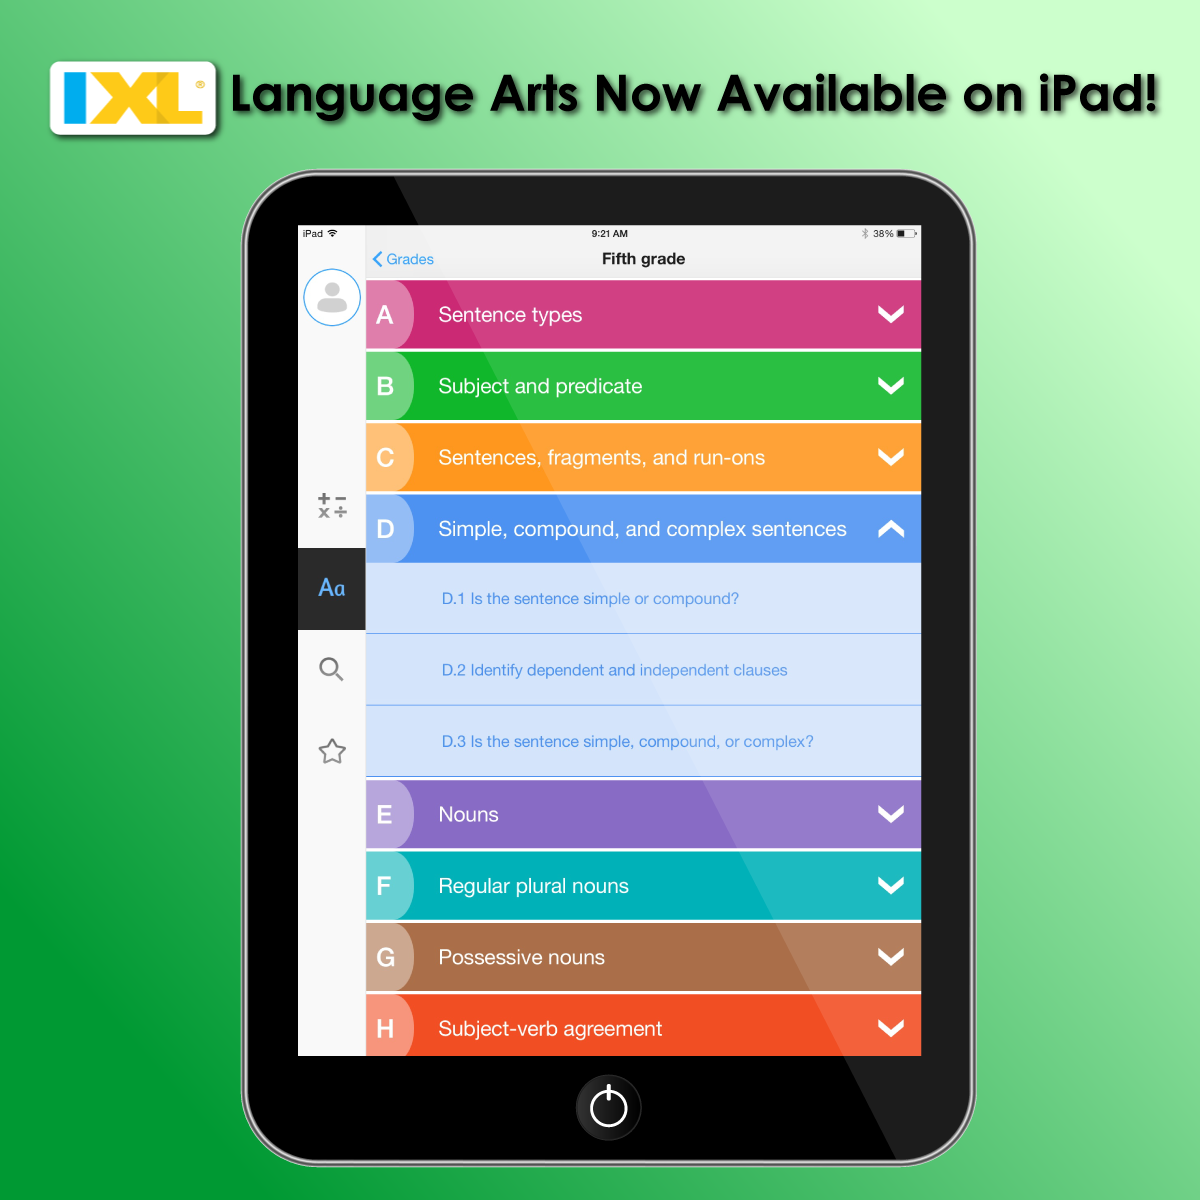 IXL Language Arts Now Available on iPad!